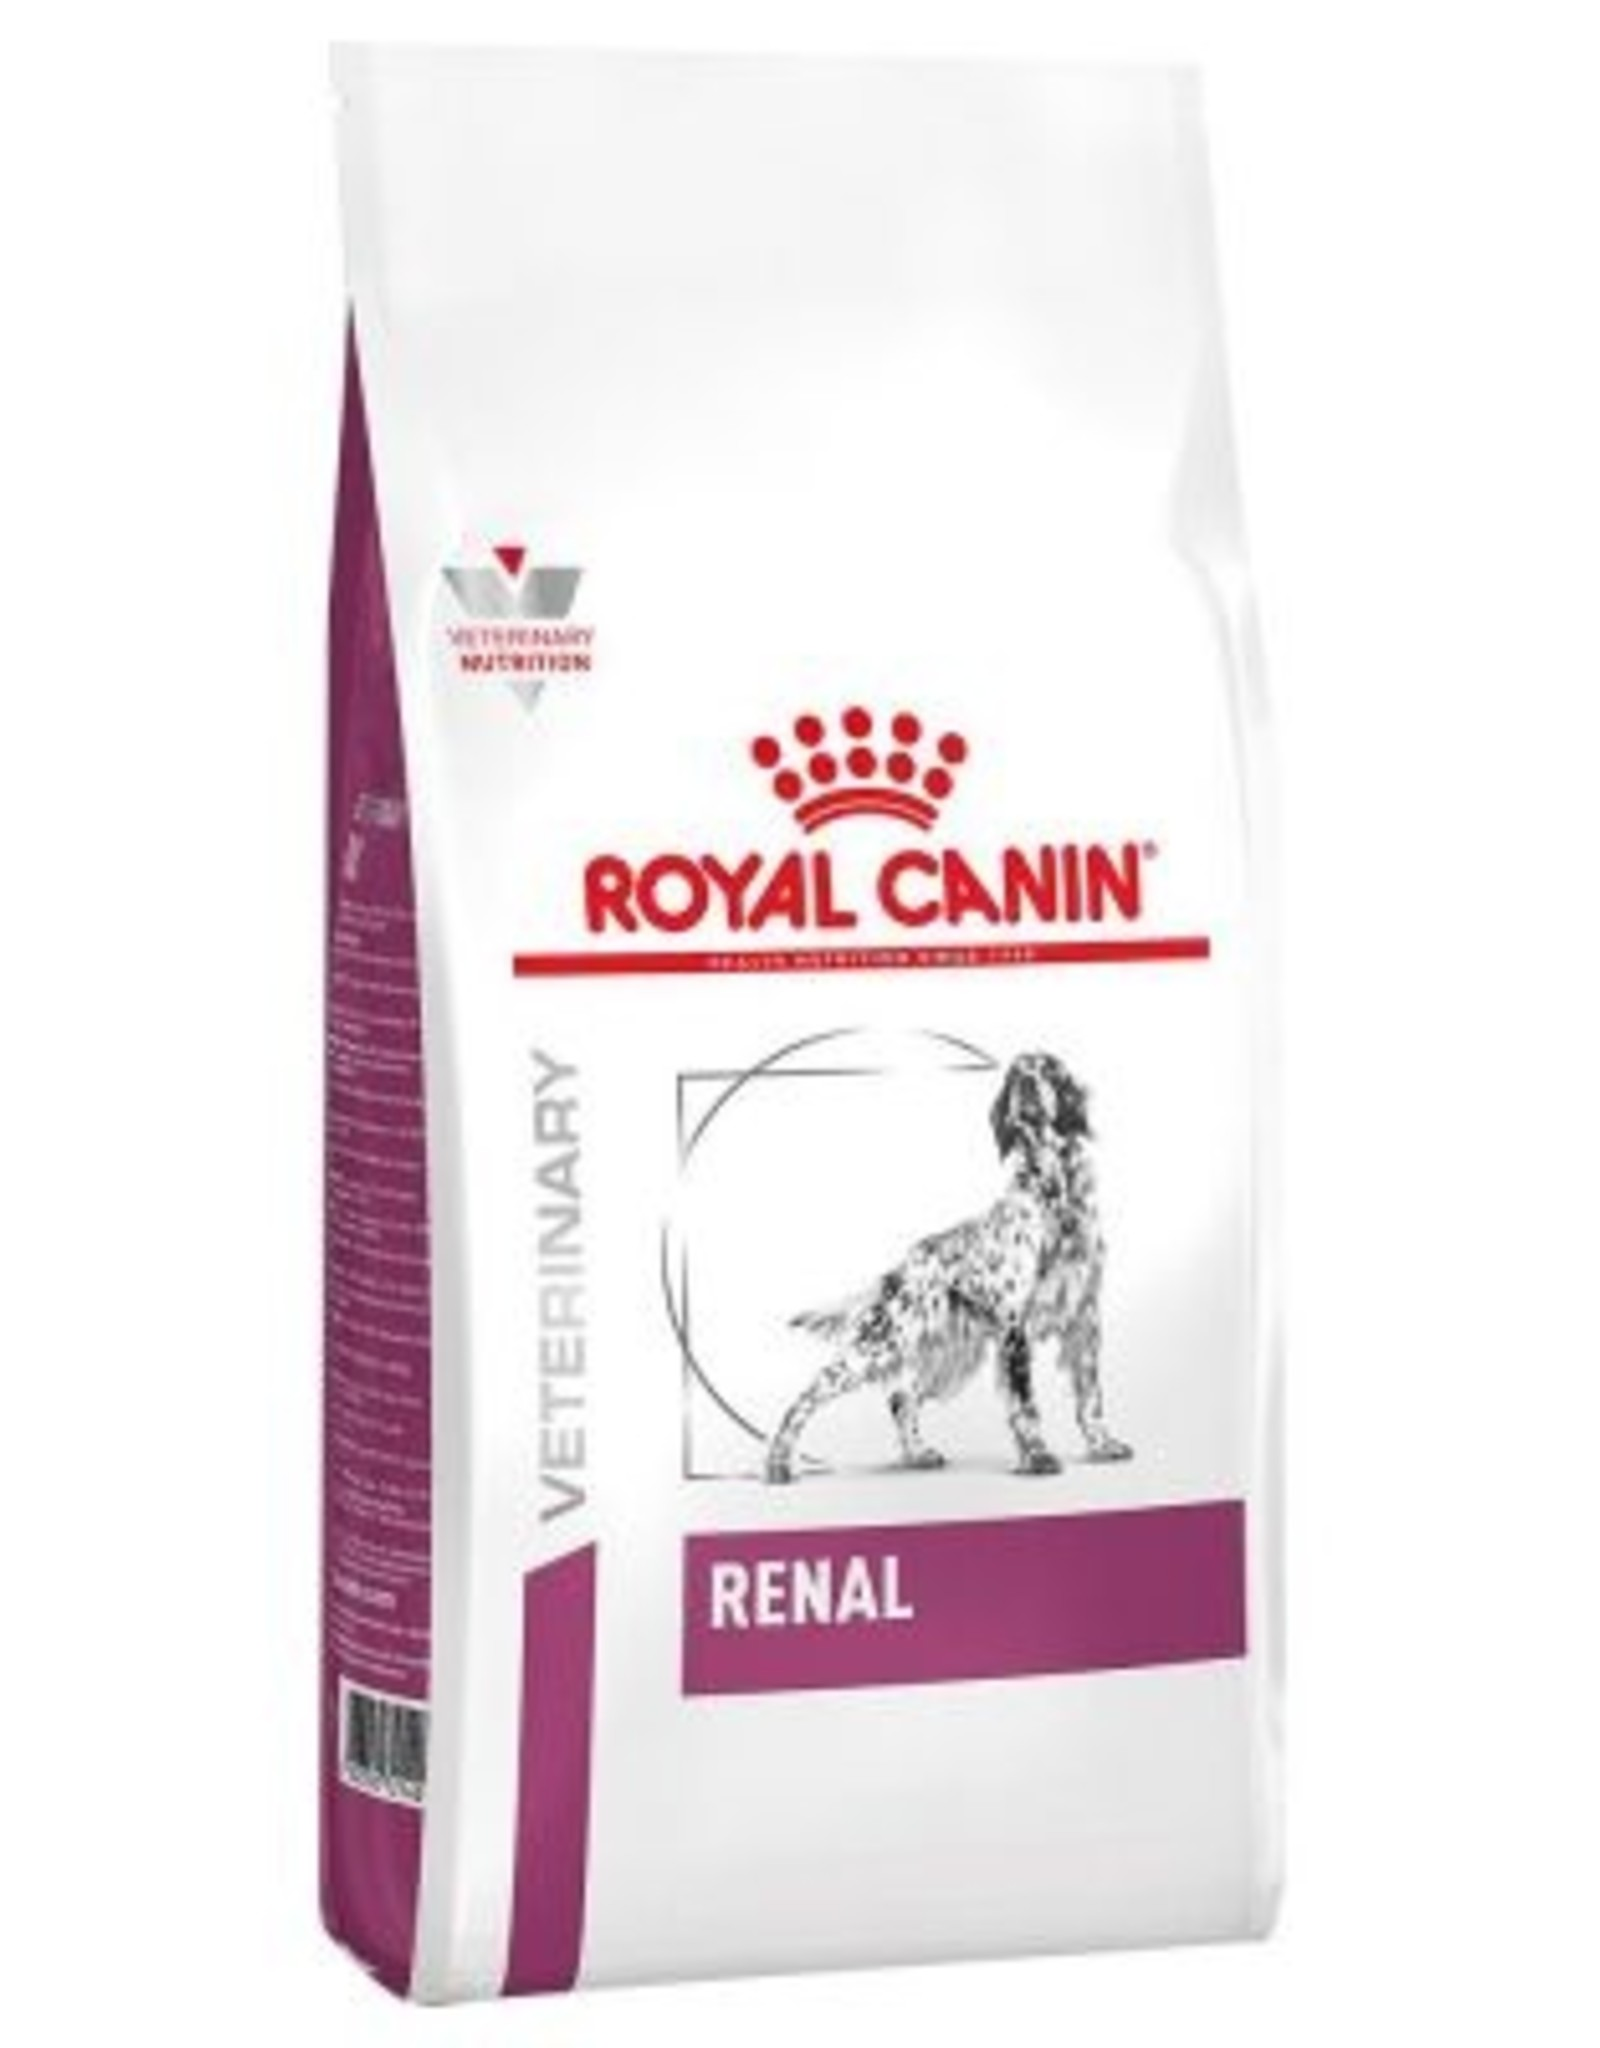 Royal Canin Royal Canin Vdiet Renal Canine 14kg